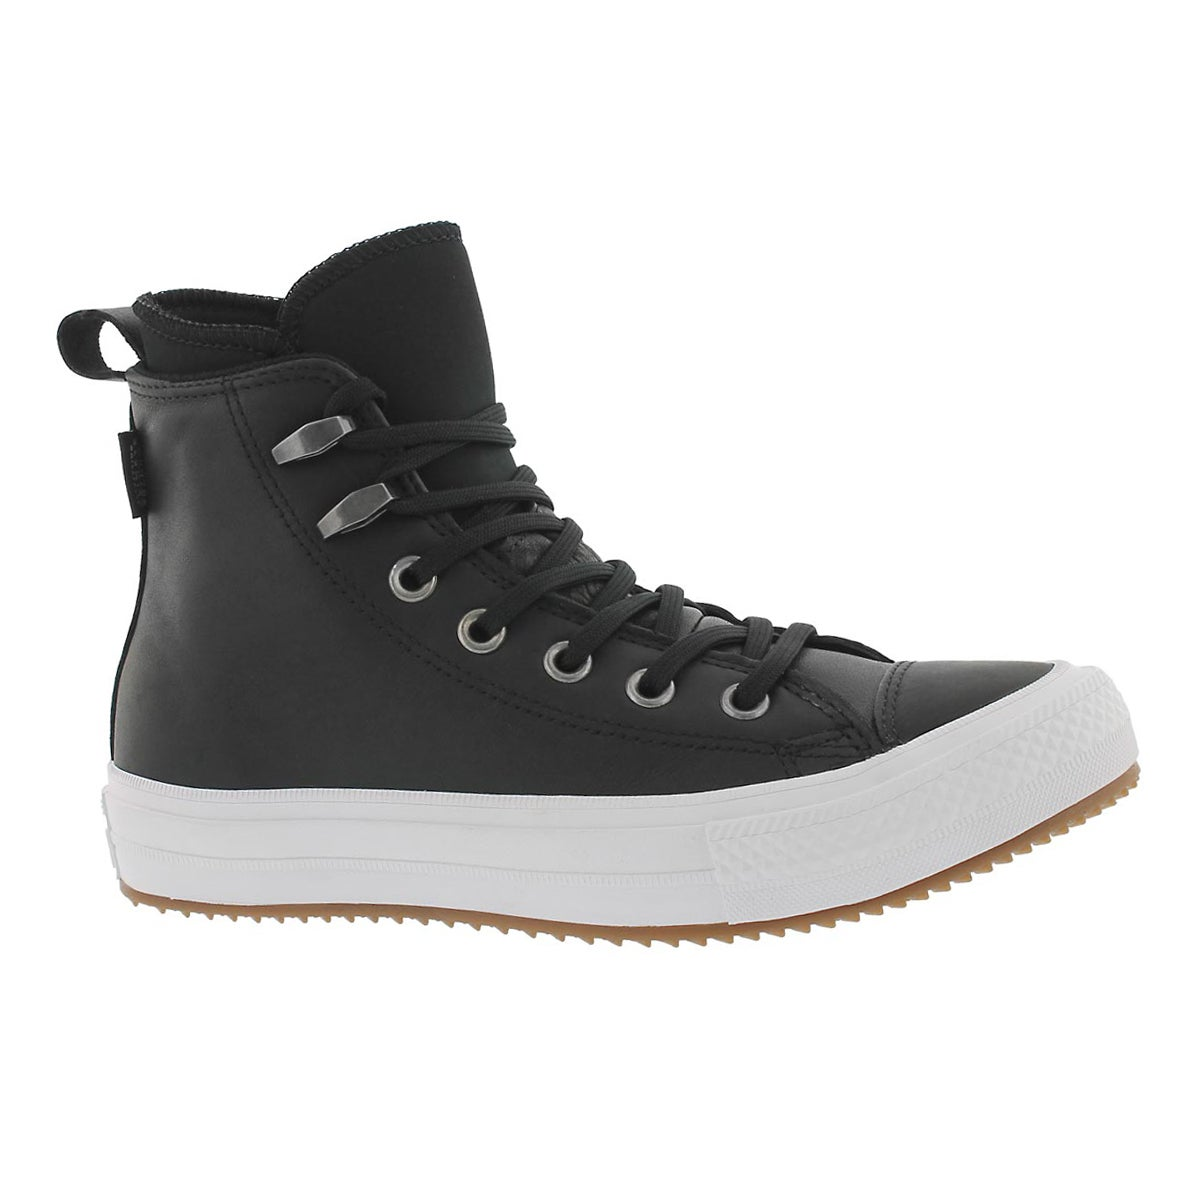 Women's CT ALL STAR black waterproof leather boots